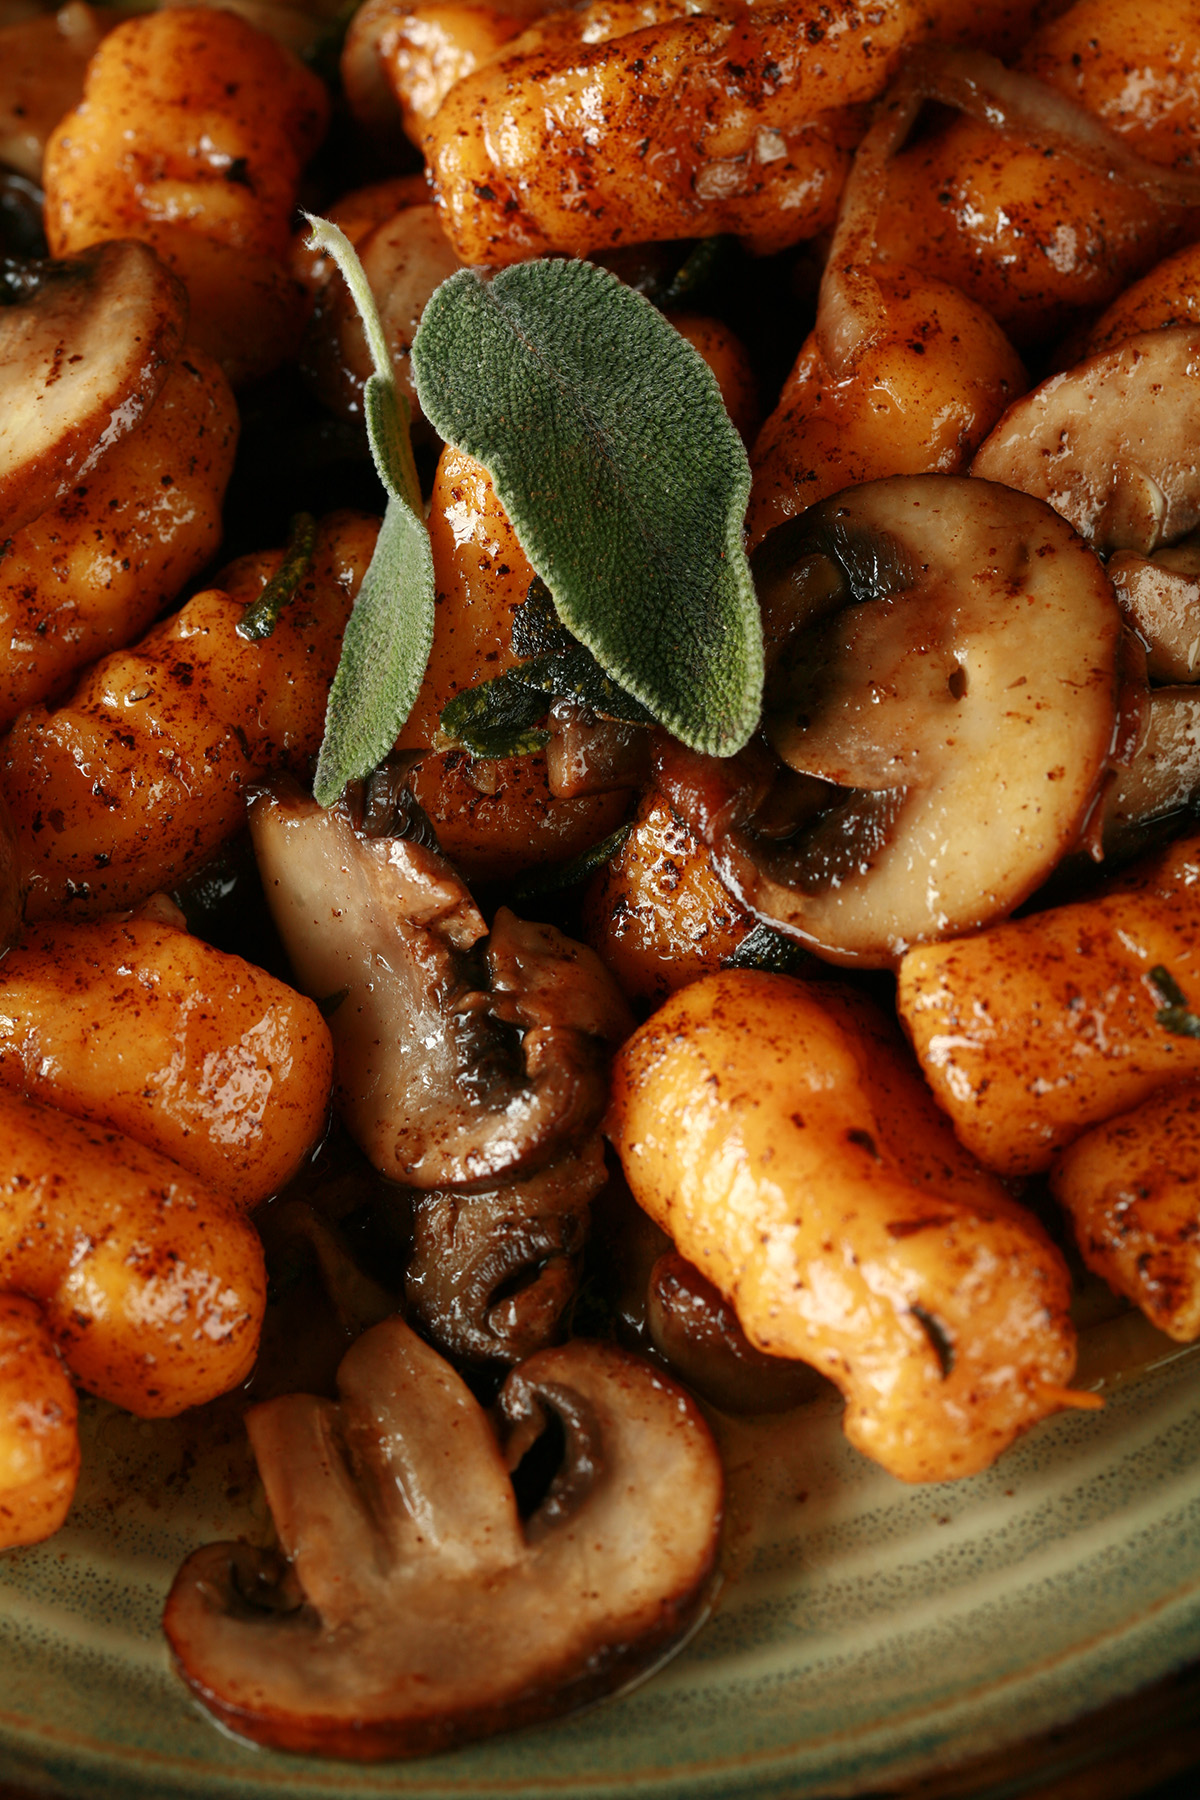 Close up view of paleo sweet potato gnocchi with mushrooms and sage.